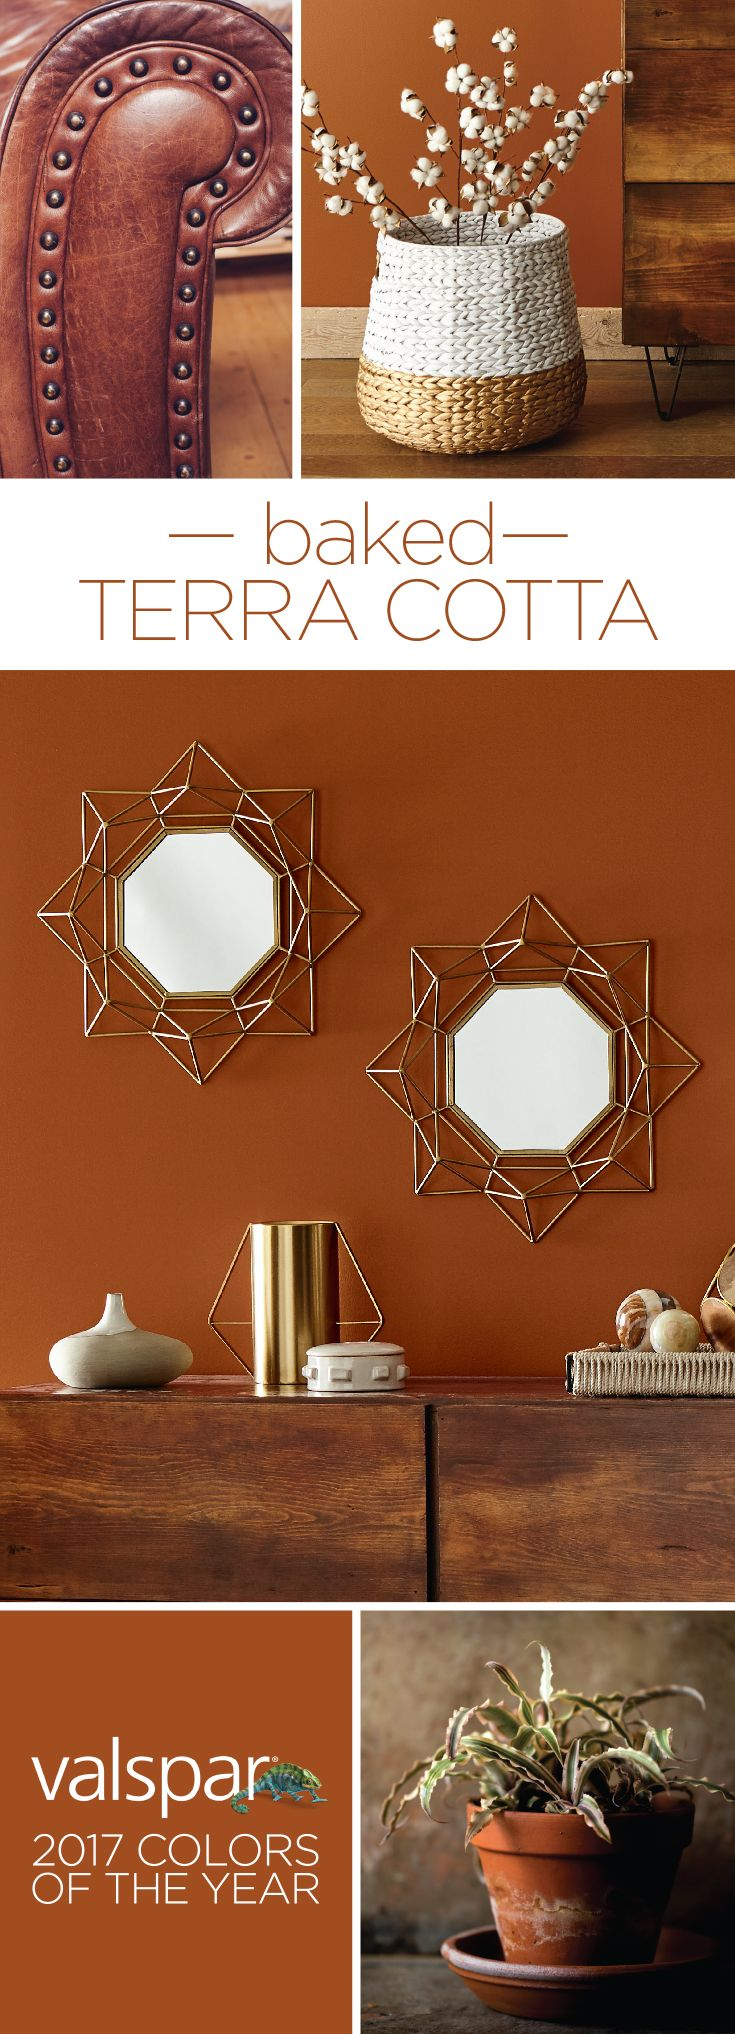 """Warm and inviting in any lighting, rich and earthy terra cotta is back in a big way!"" Sue Kim, Valspar Color Strategist. One of 12 Valspar 2017 Colors of the Year: Autumn Russet at Lowe's.  https://www.askval.com/ColorsOfTheYearLanding/Baked-Terra-Cotta"